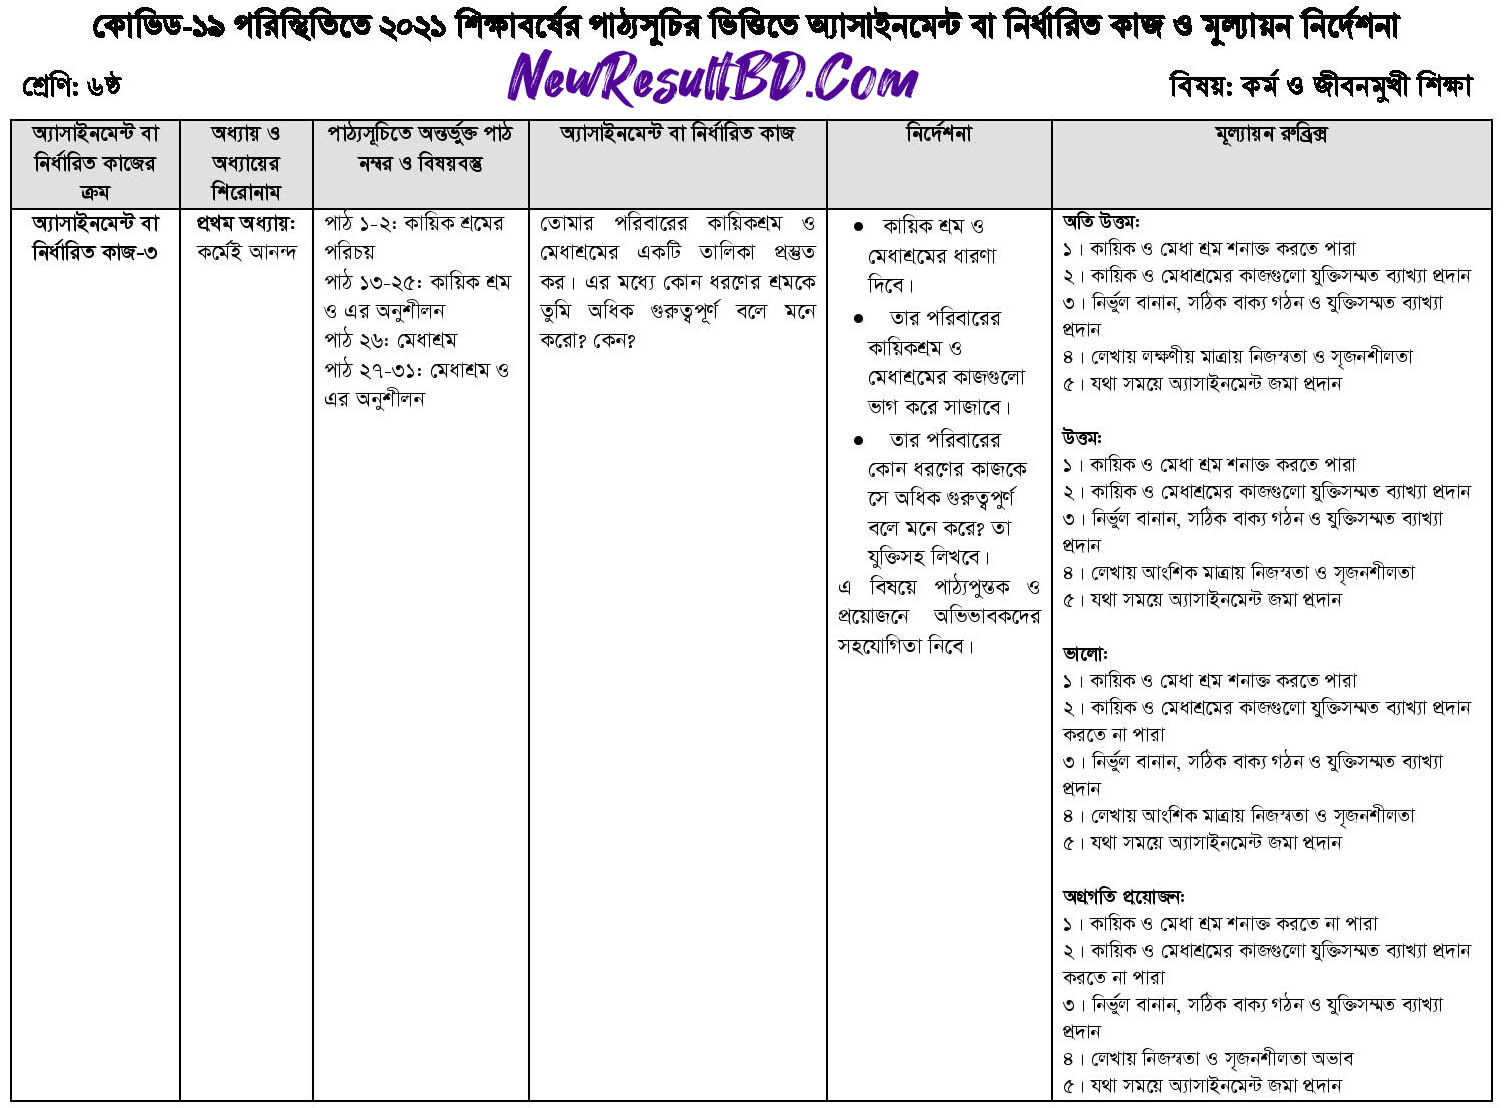 Class 6 Work and Life Oriented Education 15th Week Assignment 2021